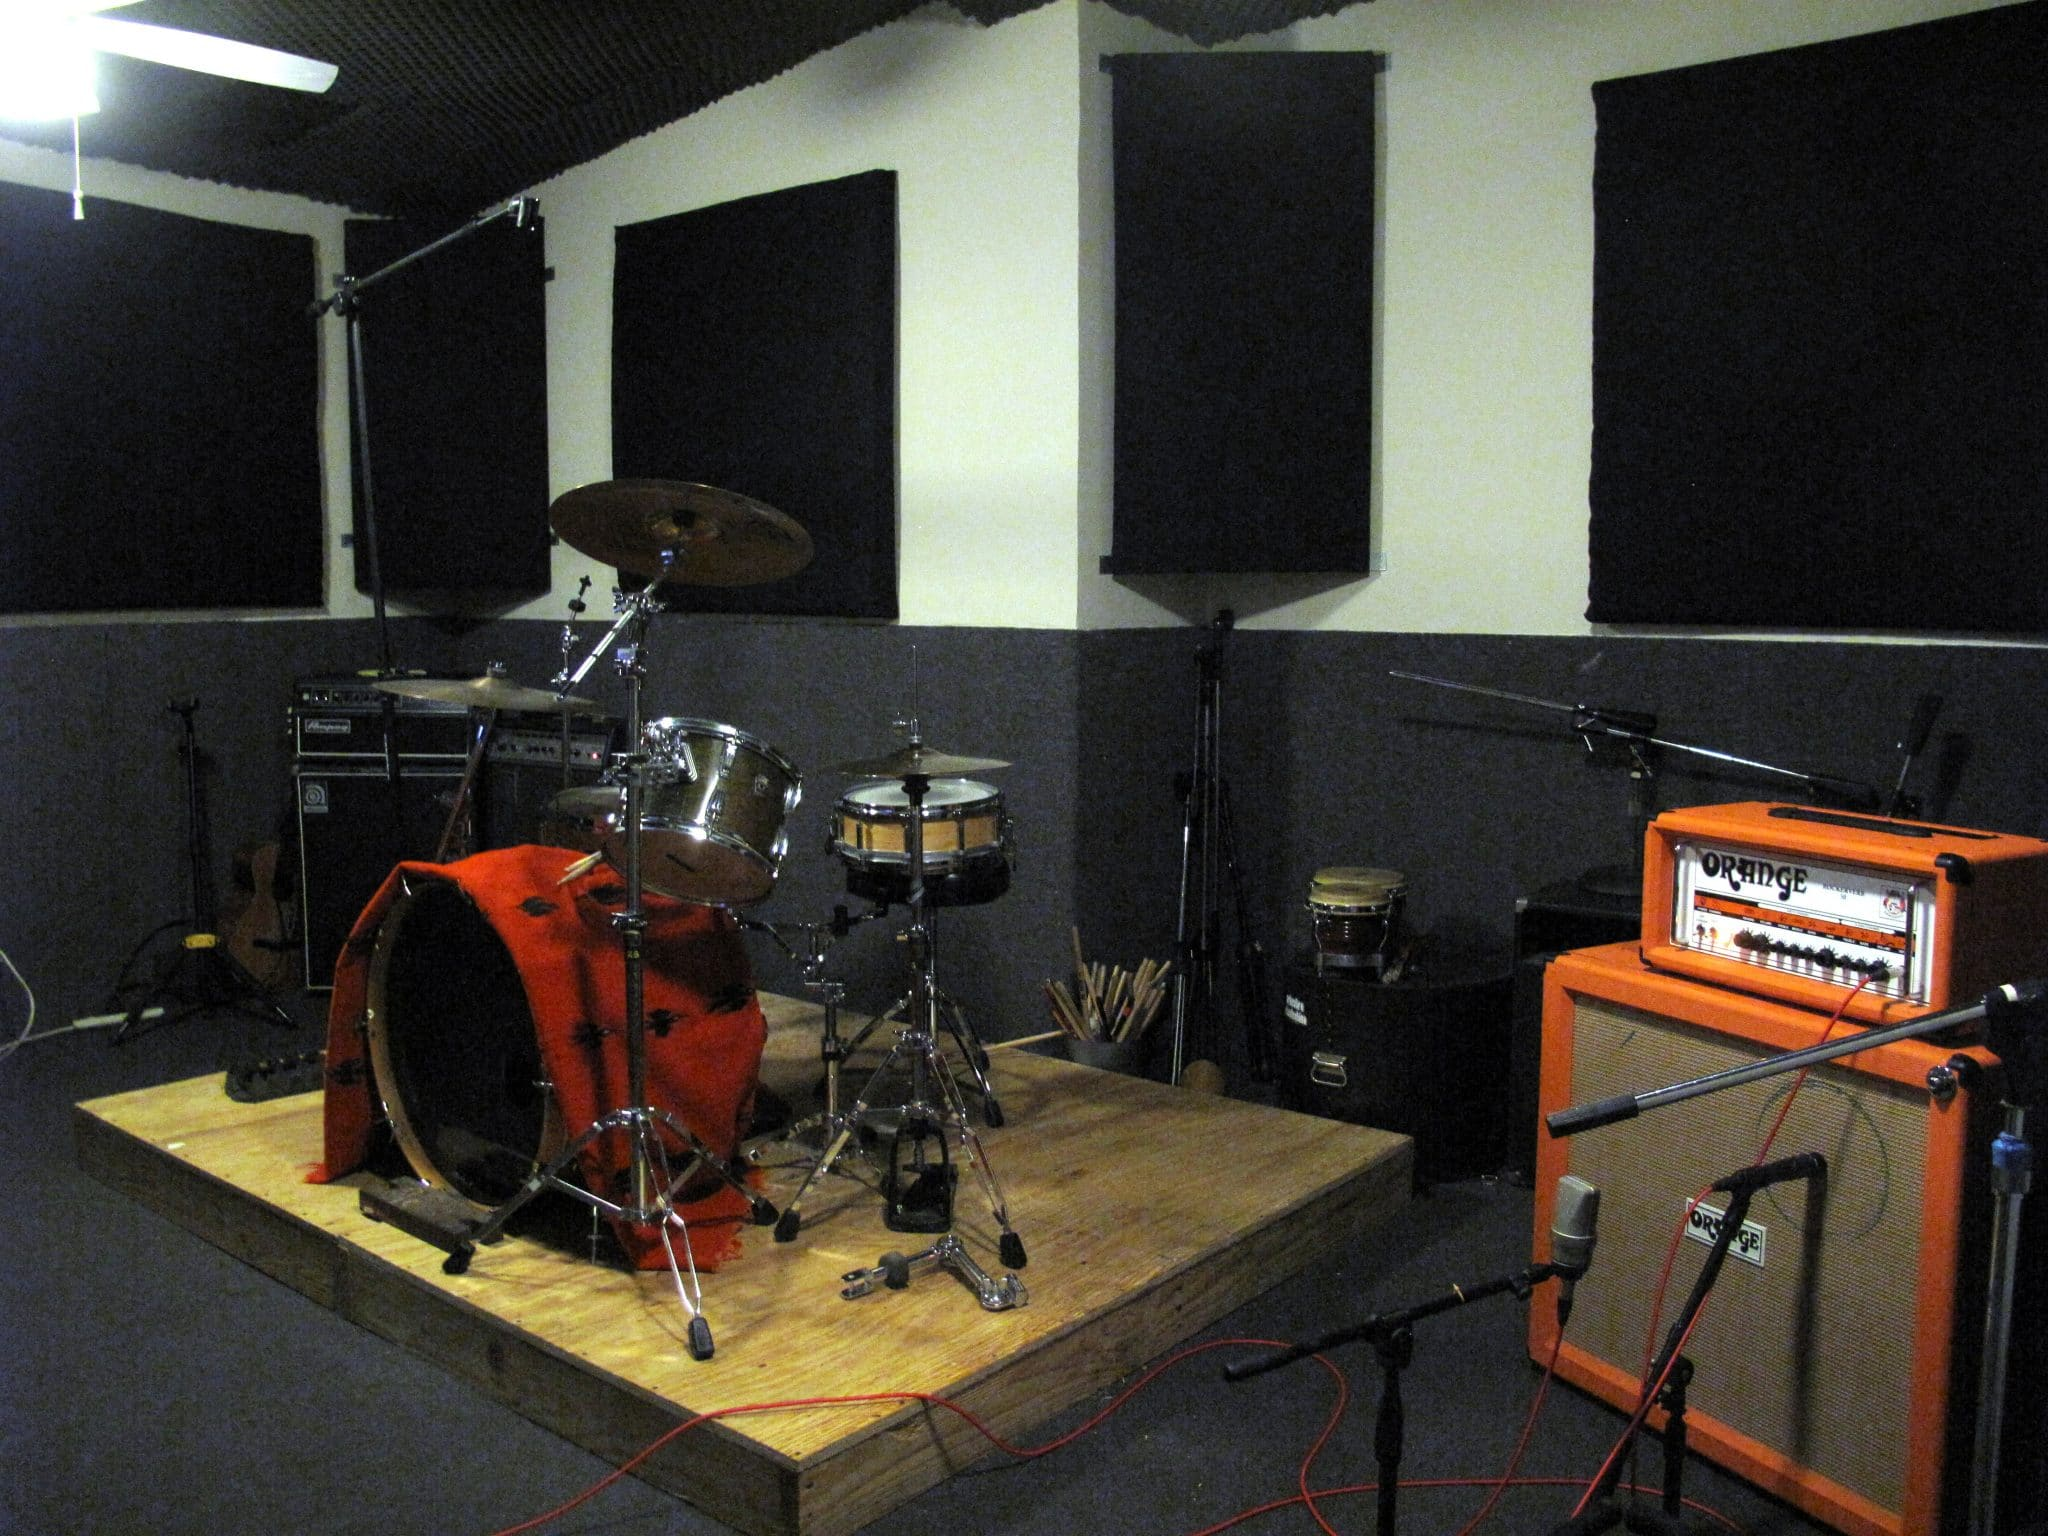 Where Is Drum Rehearsal And Band Practice Space In Los Angeles